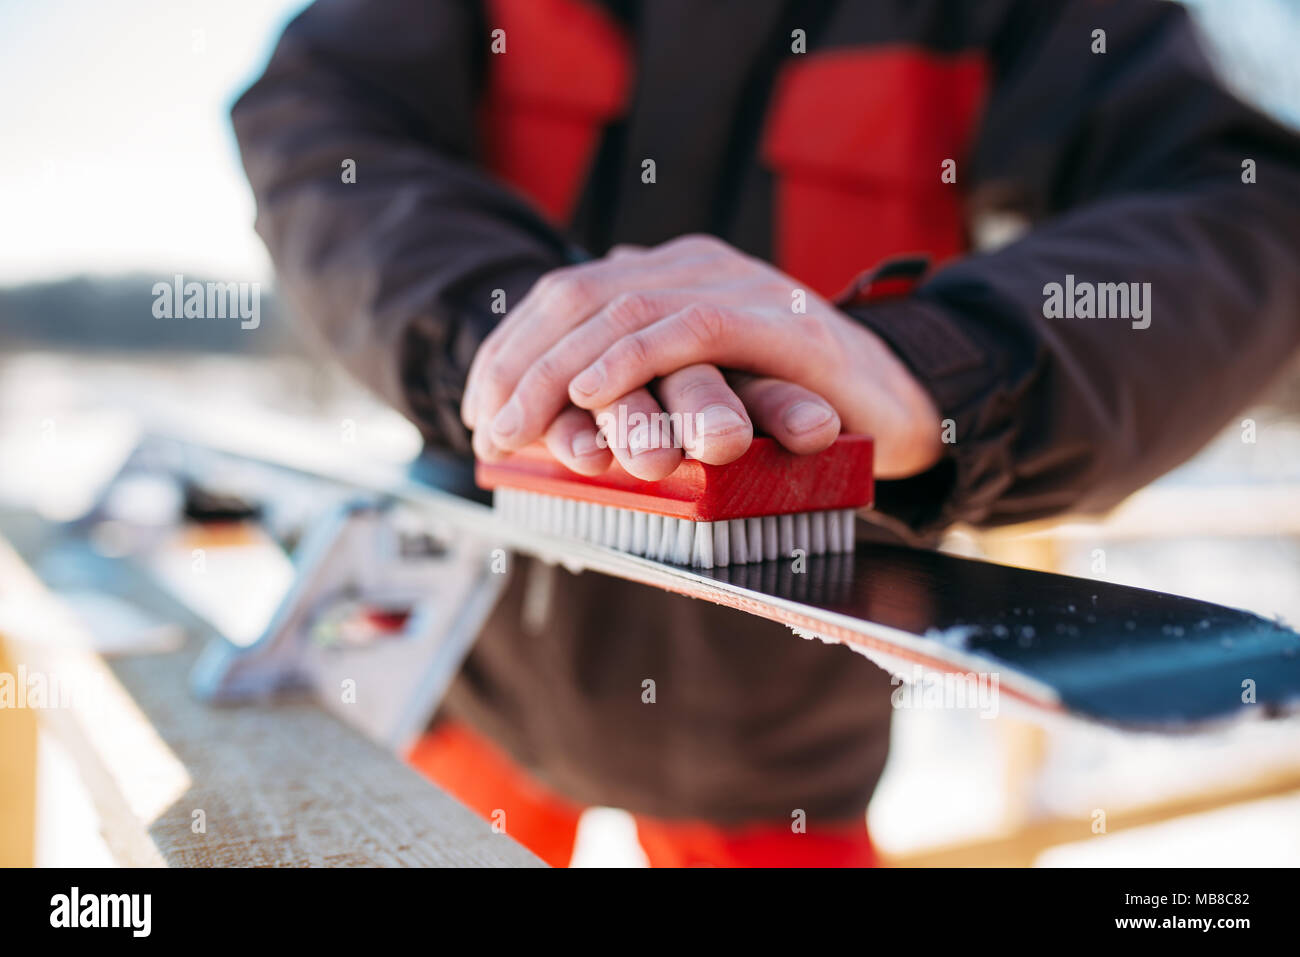 Male skier hands prepares skis for riding. Winter active sport, extreme lifestyle. Downhill skiing - Stock Image